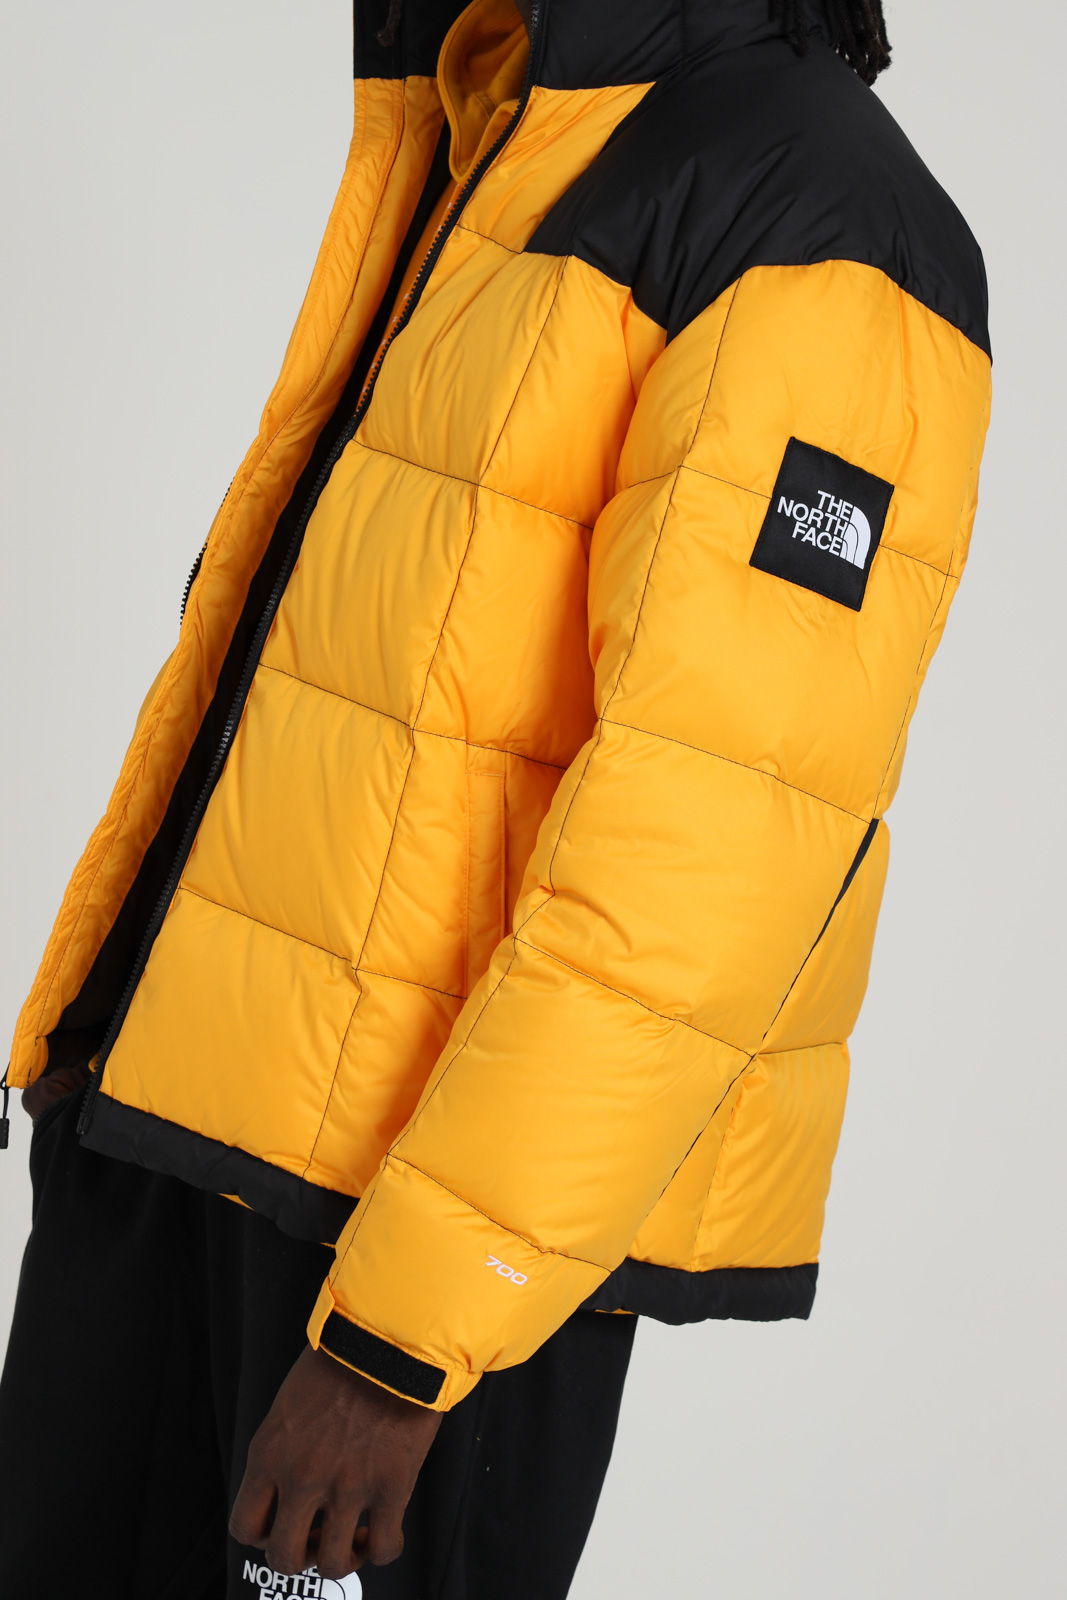 Giubbotto con zip bicolore THE NORTH FACE | Giubbotti | NF0A3Y2356P156P1